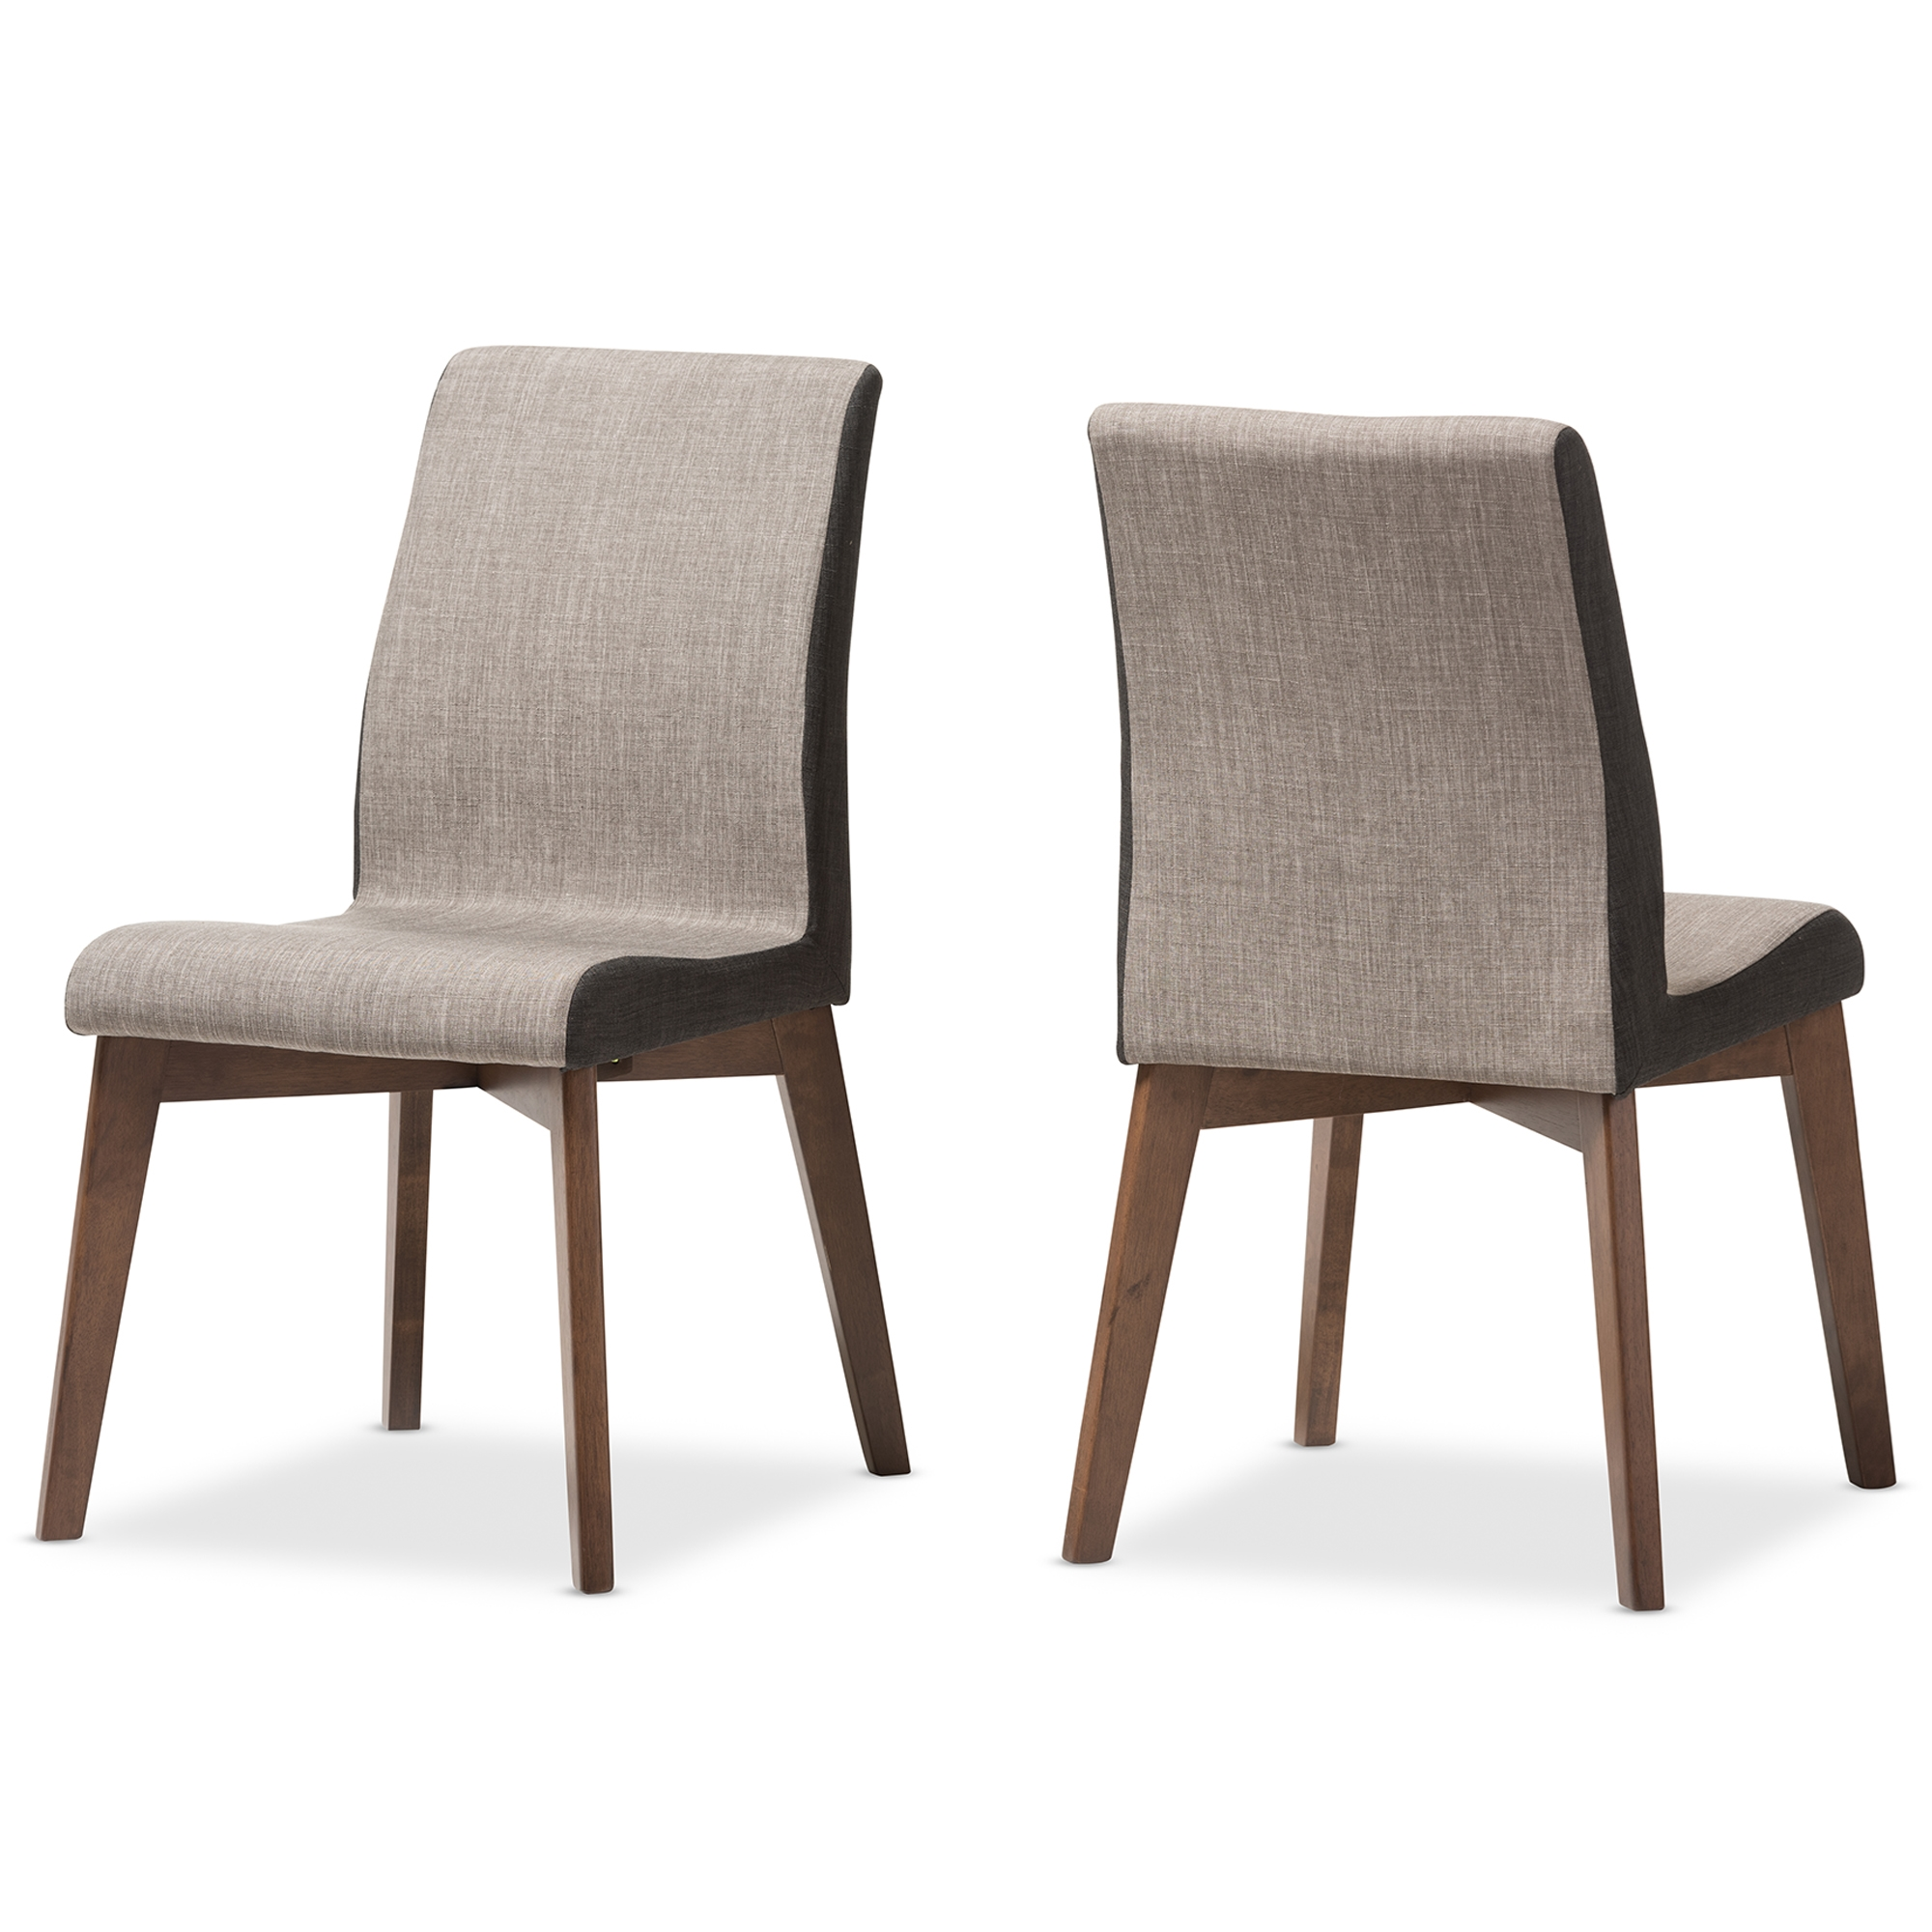 baxton studio kimberly midcentury modern beige and brown fabric dining chair set of